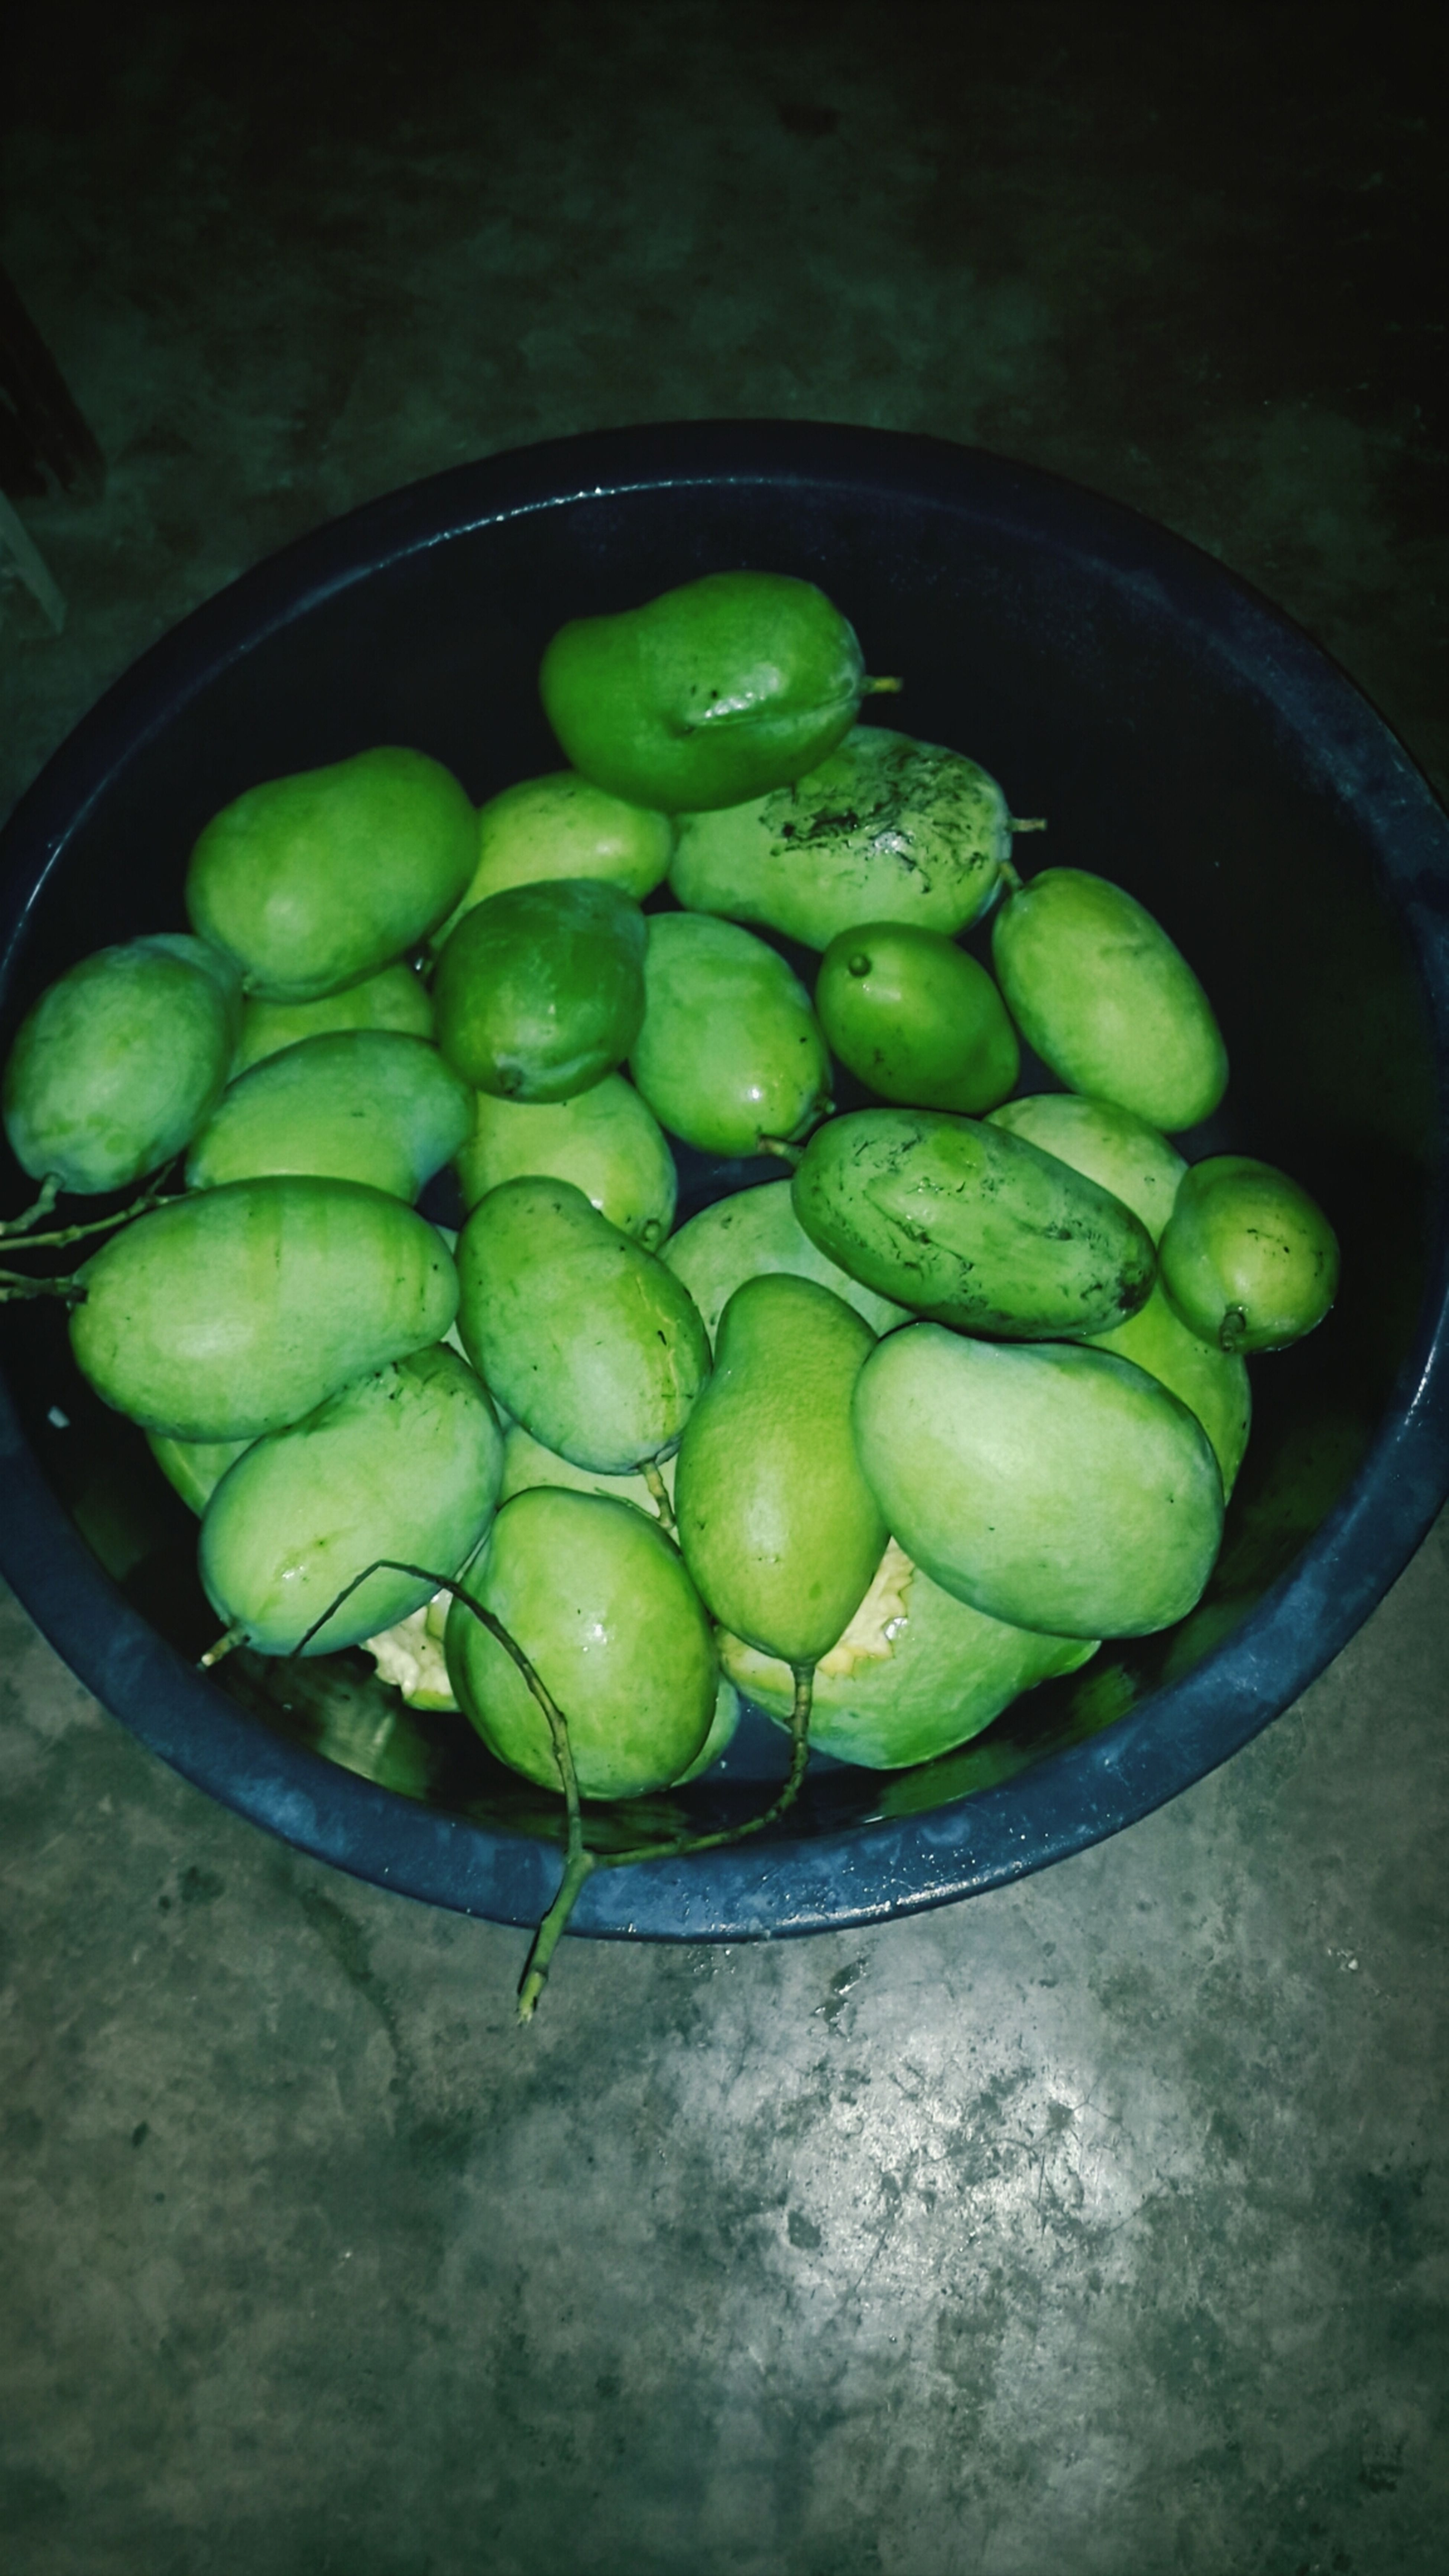 green mangoes from our backyard!.;)